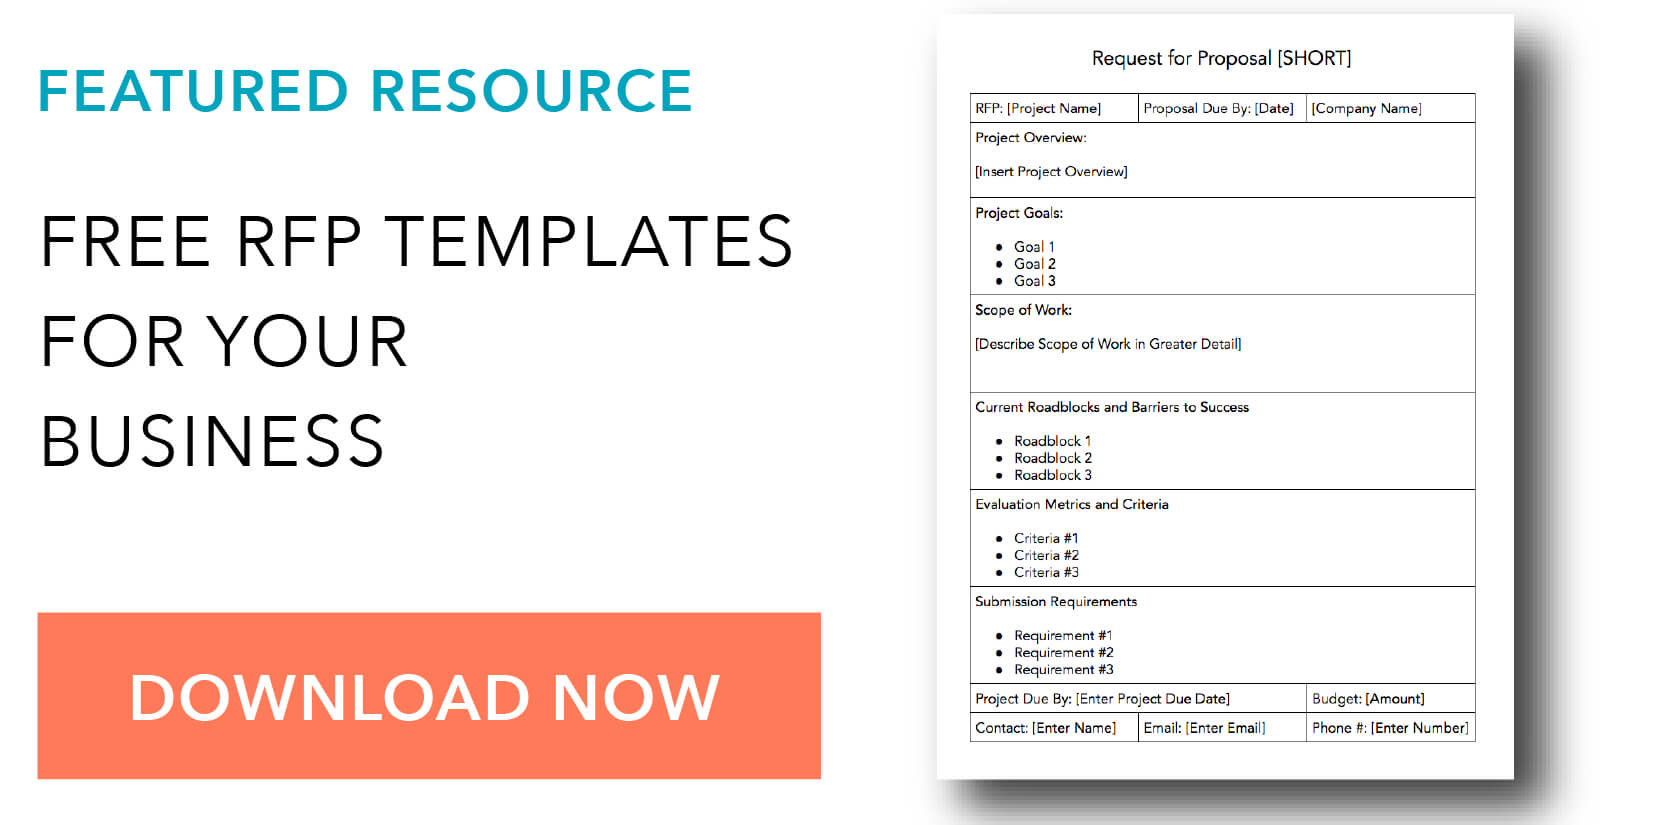 How To Write A Request For Proposal, With Template And Sample Within Post Event Evaluation Report Template